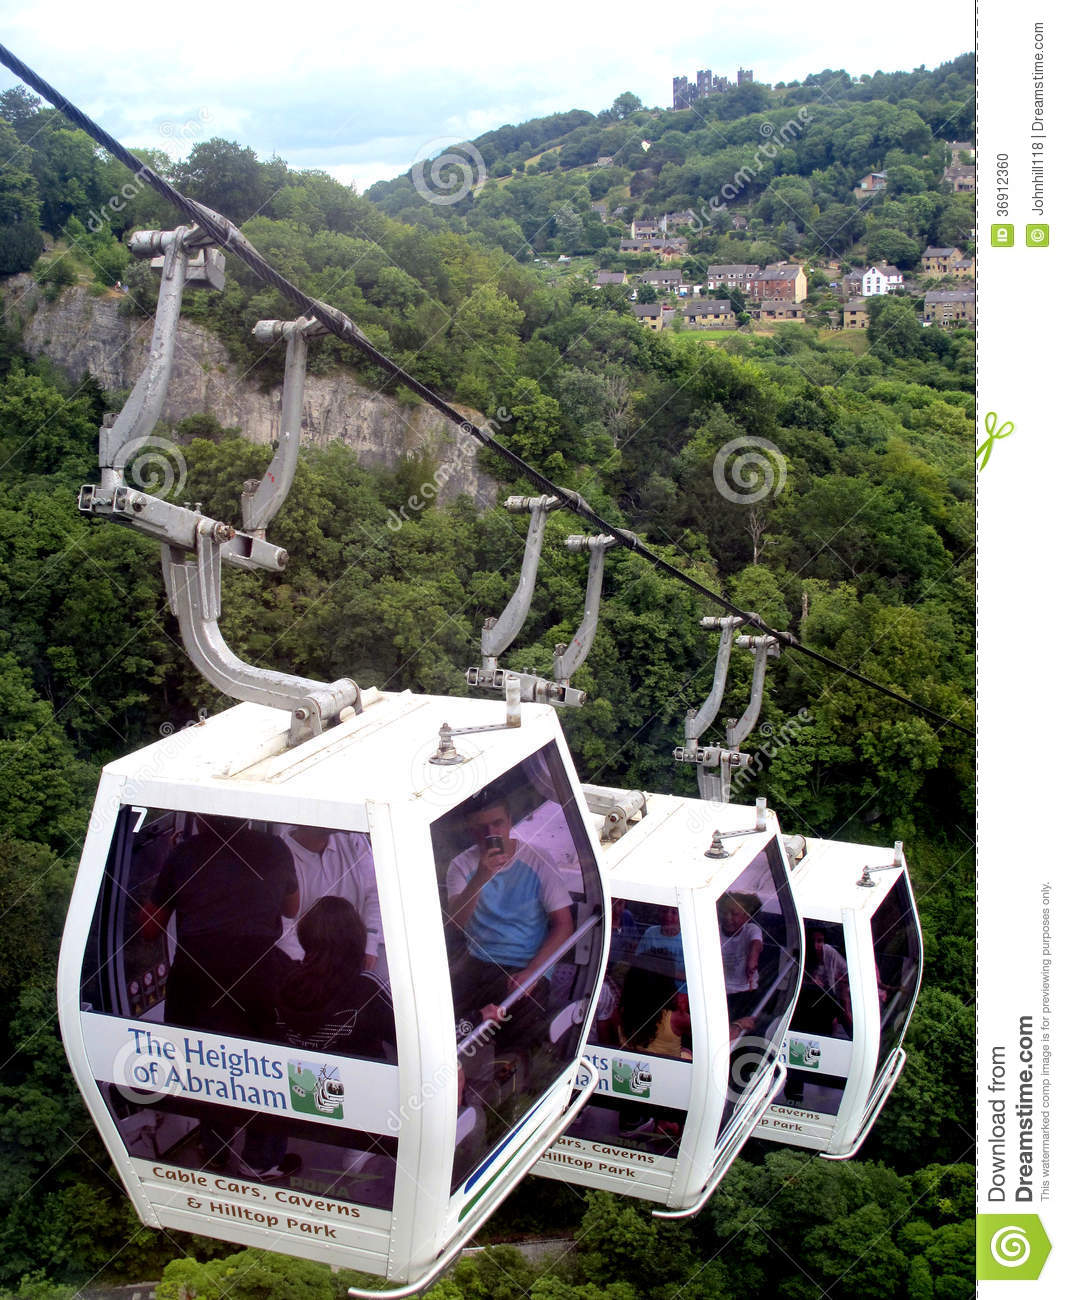 Cable cars, Heights of Abraham, Derbyshire